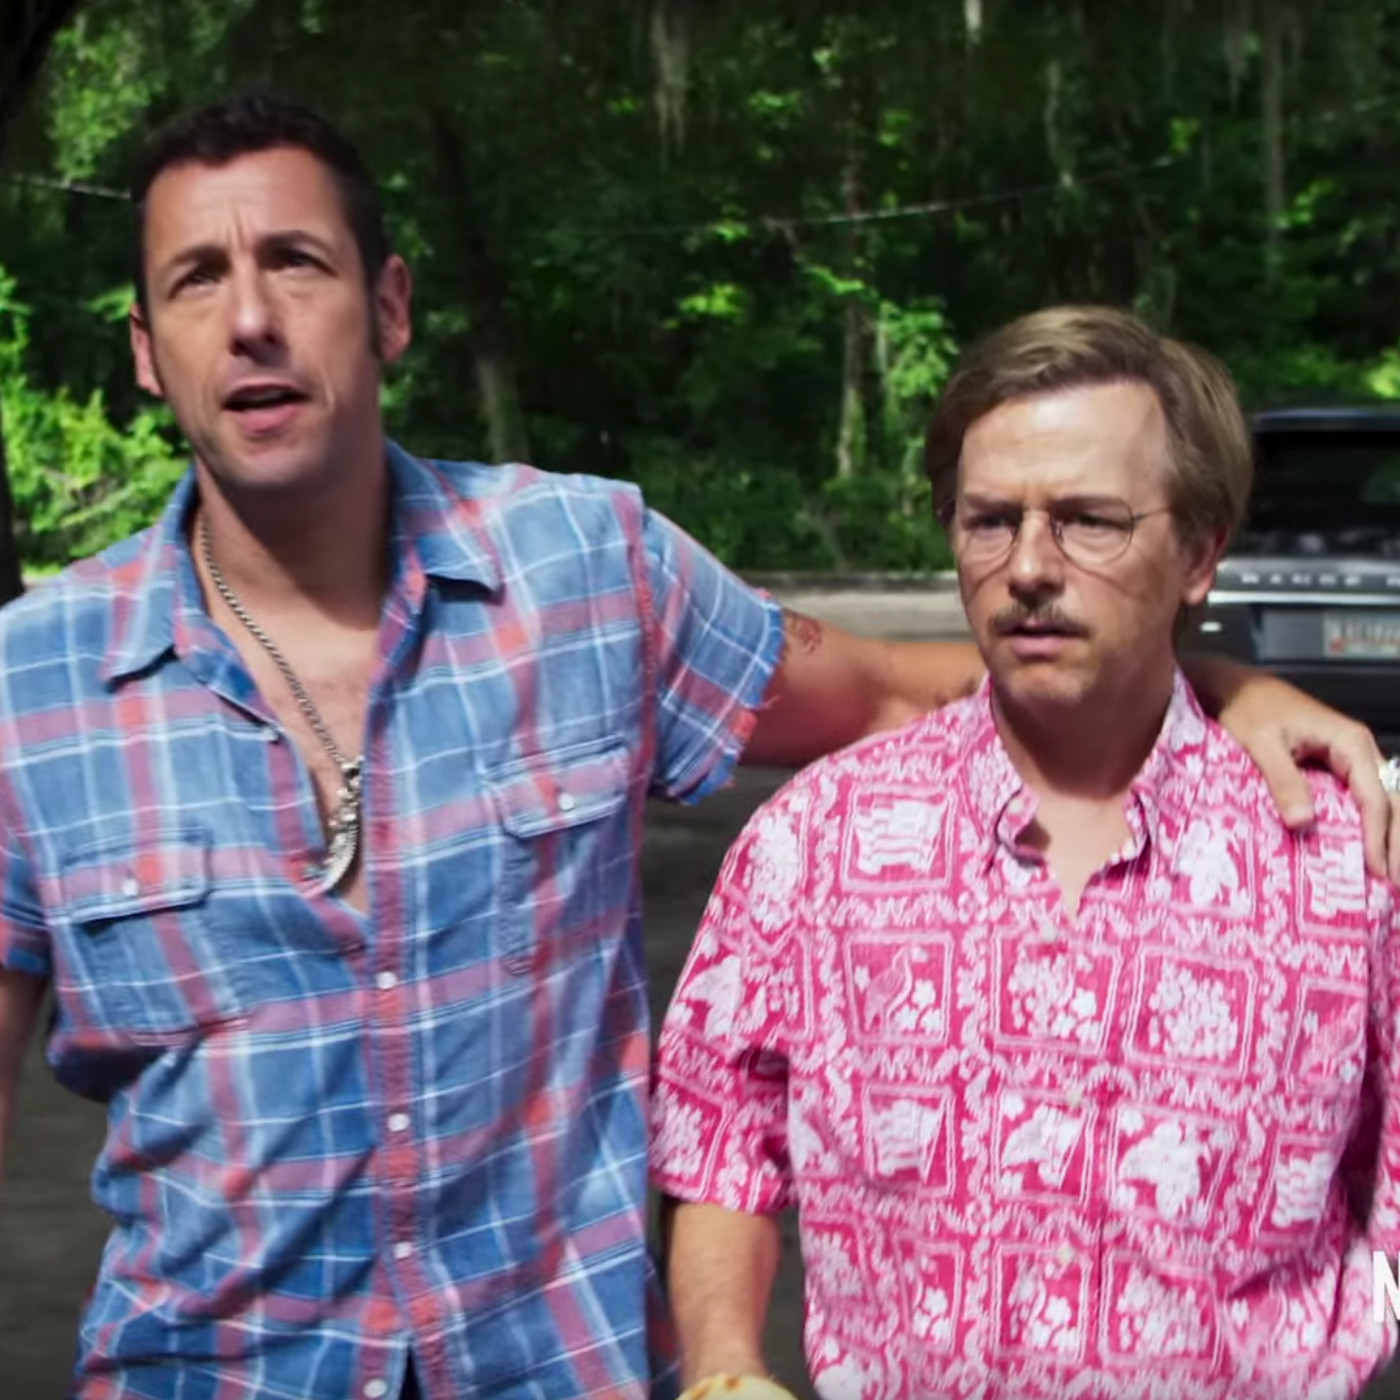 This new Adam Sandler movie looks like it could be okay, or